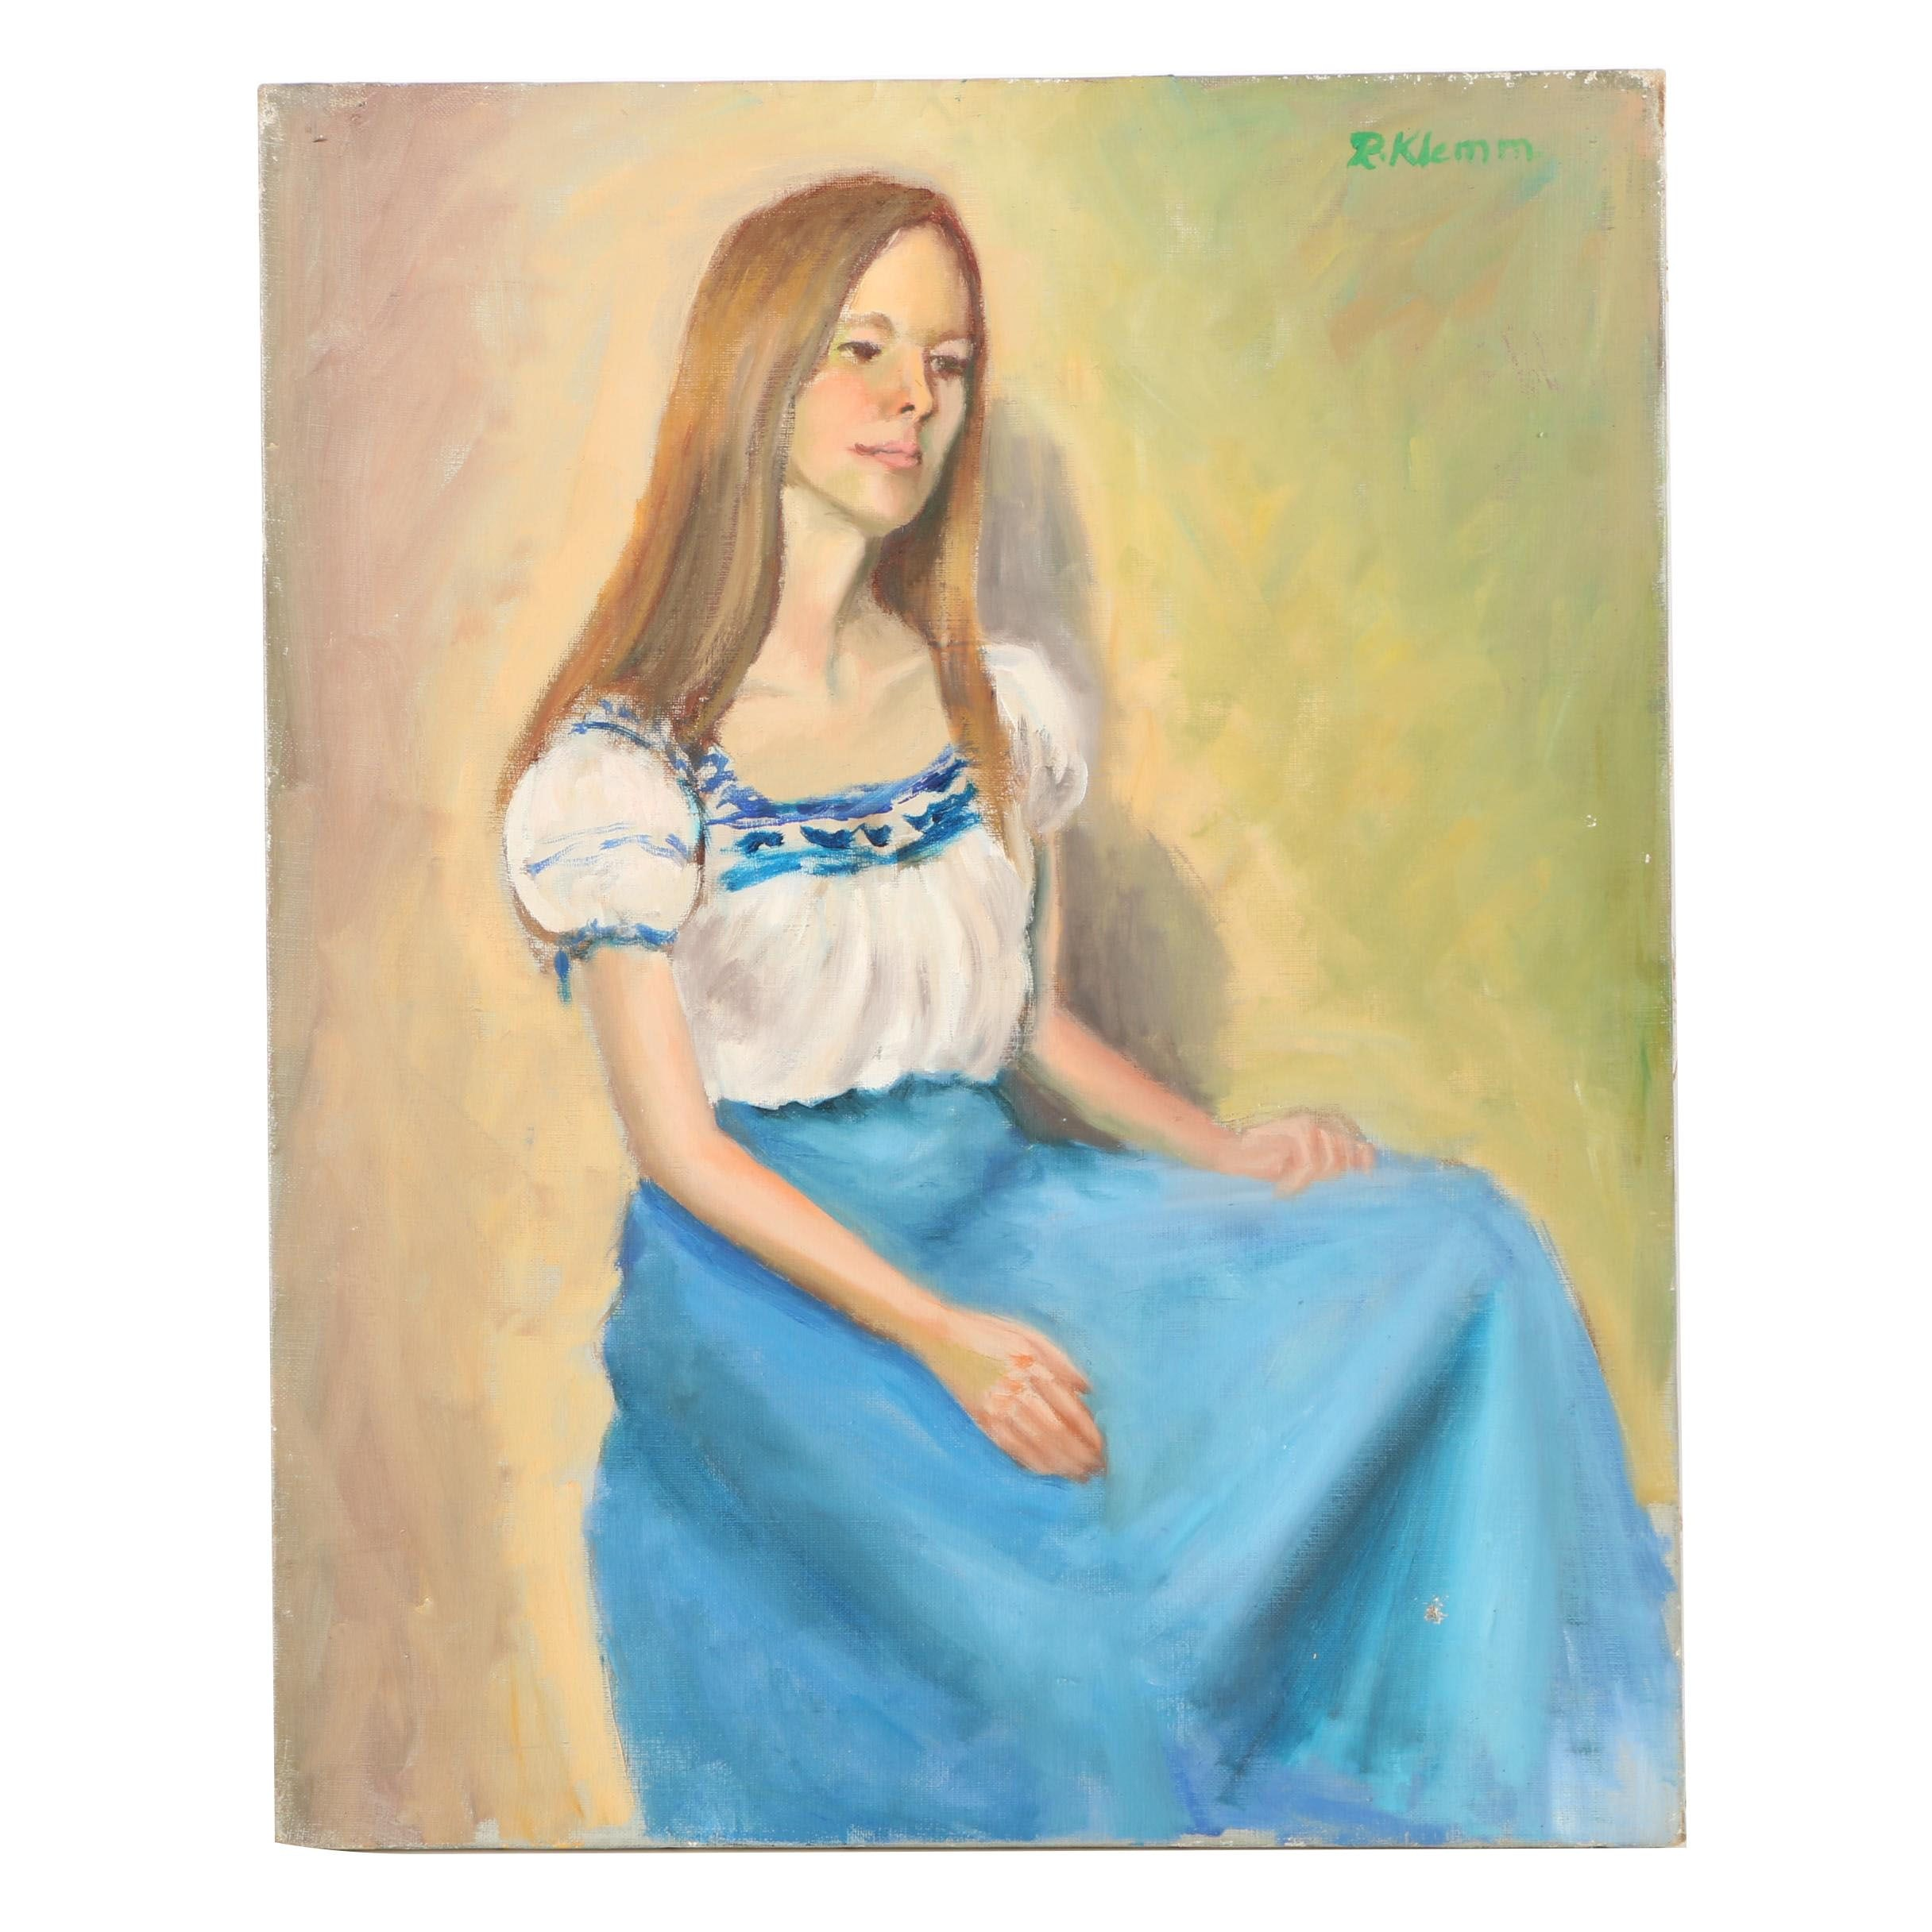 R. Klemm Oil Painting of Young Woman